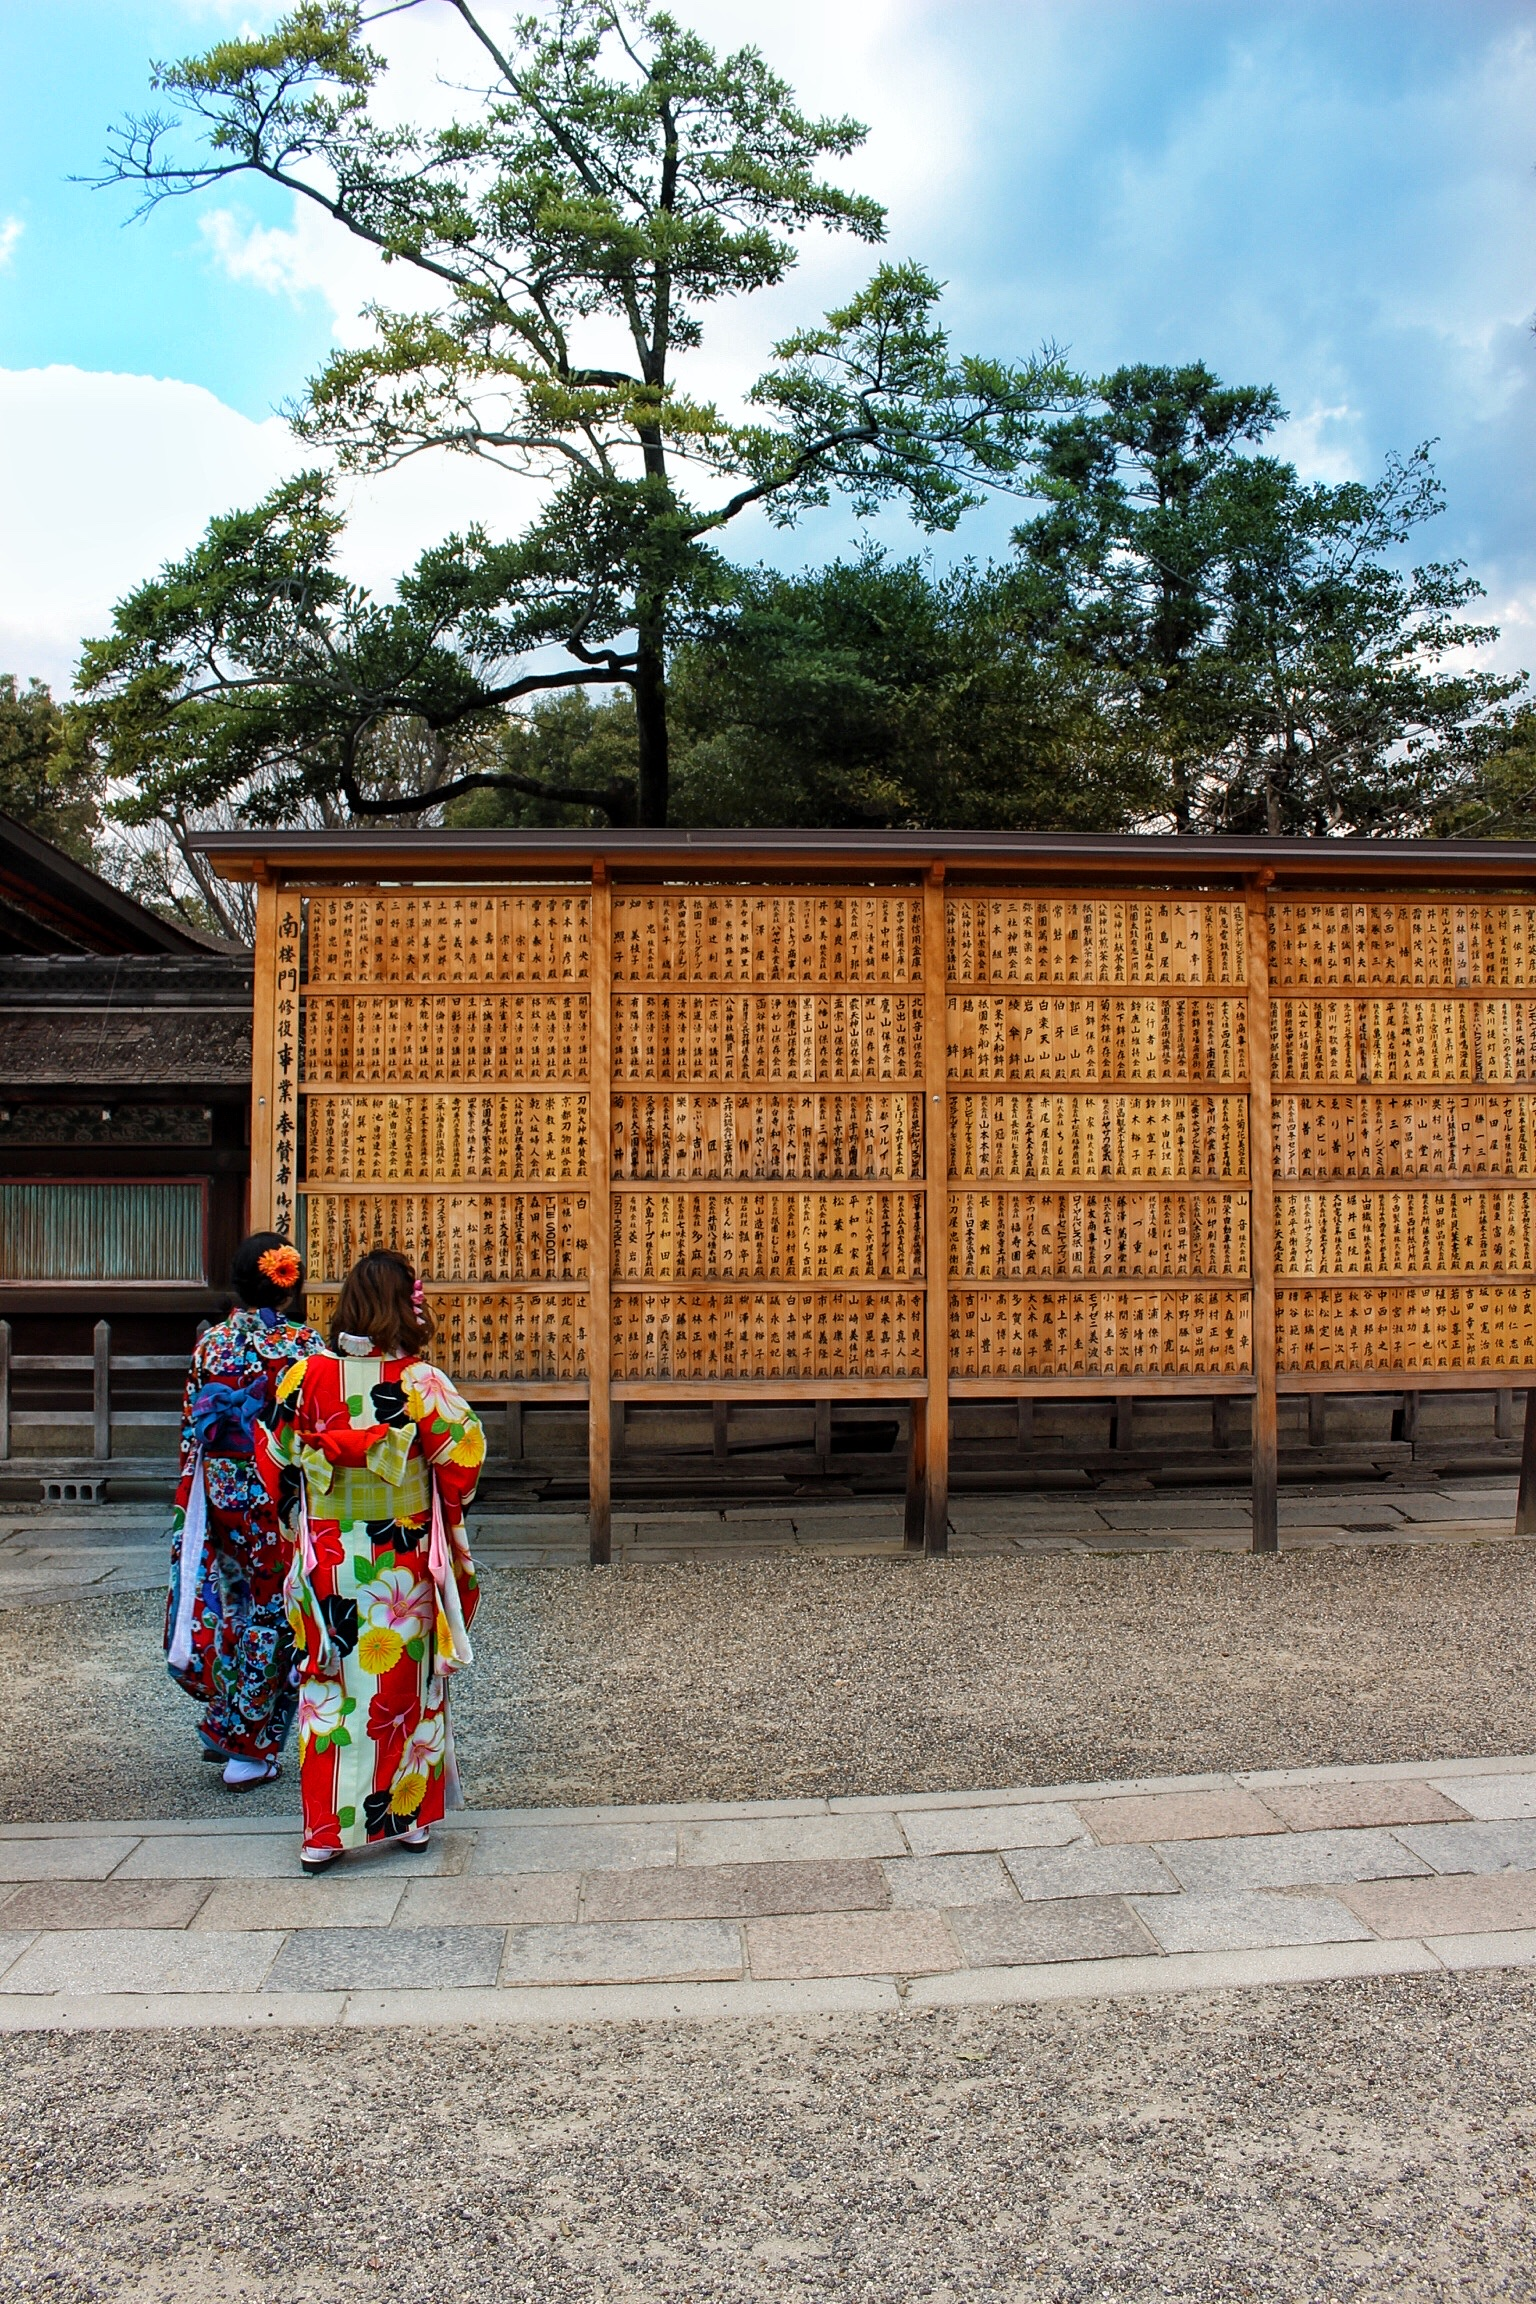 I couldn't tell which Geishas were real or just dressed up, but it was fun to walk around Gion and explore with them.